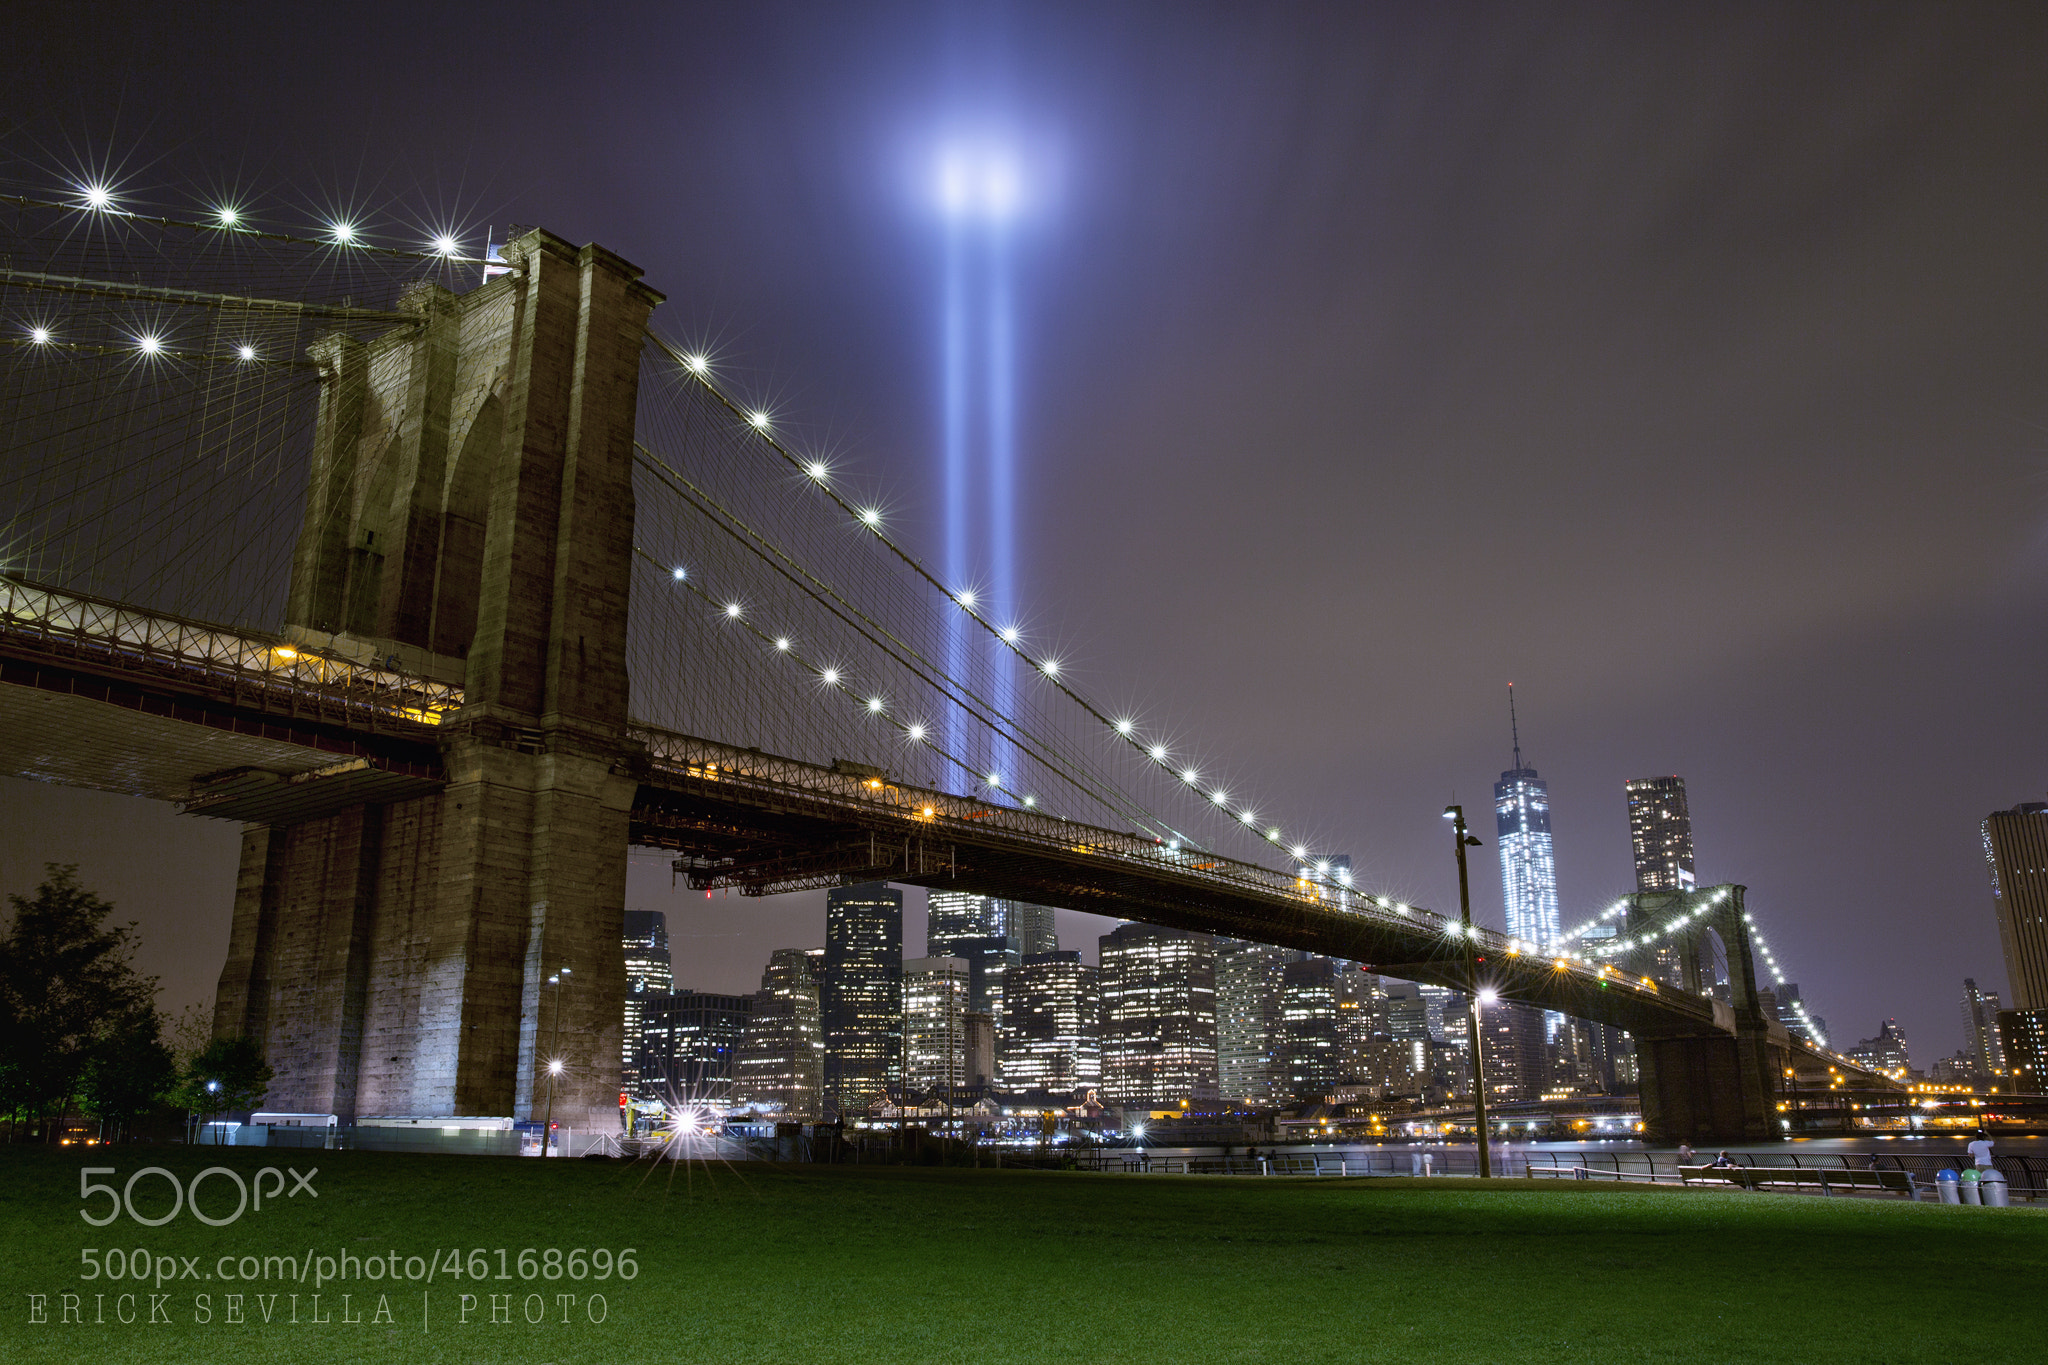 Photograph Tribute in Light - 9/11 Memorial by Erick Sevilla on 500px